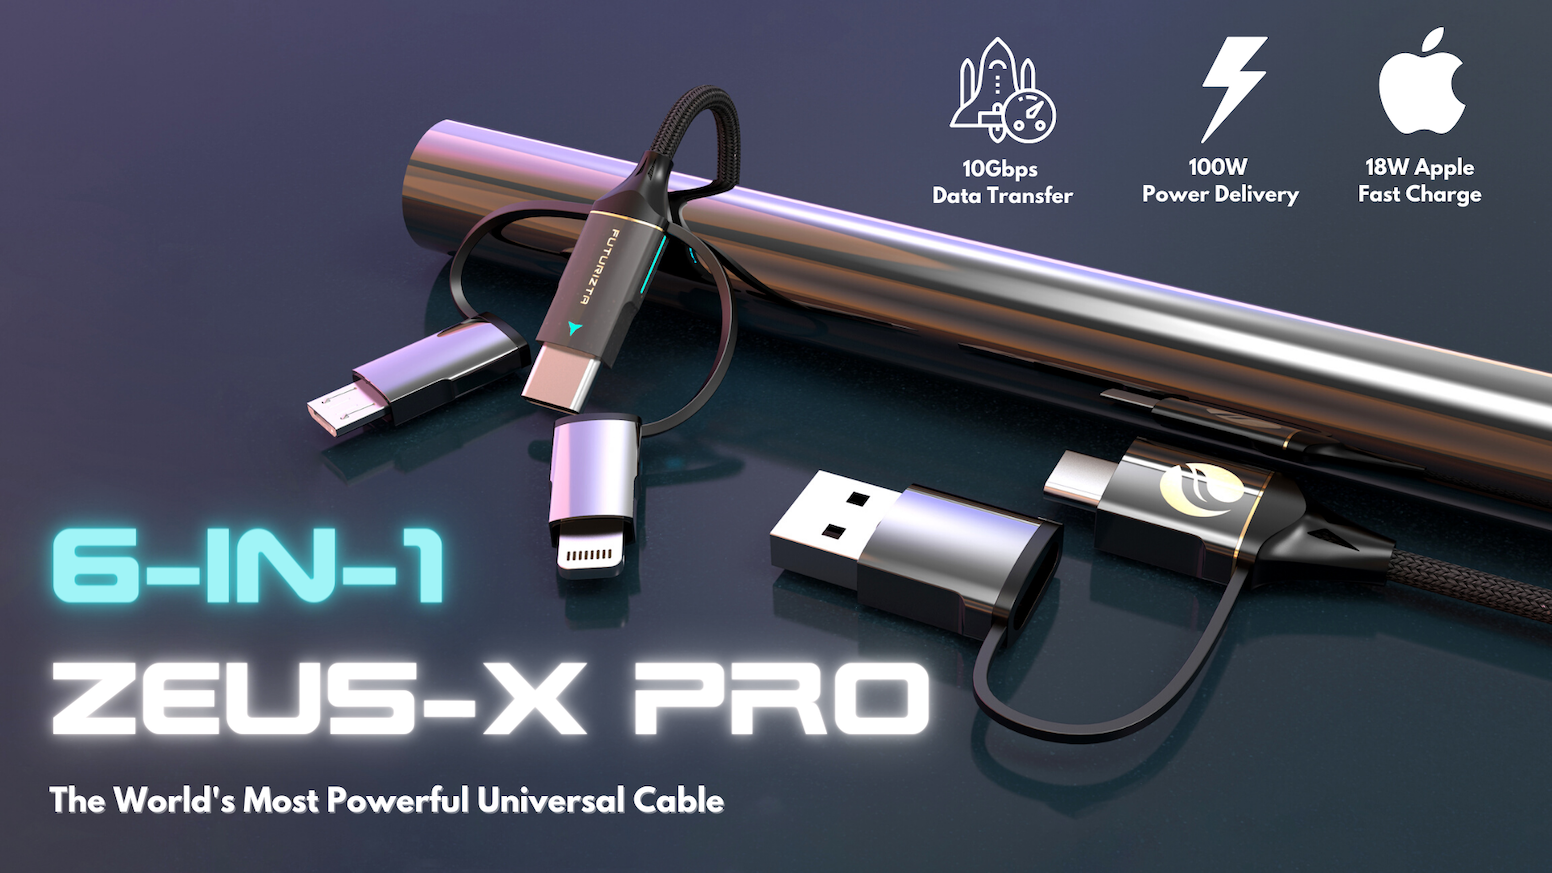 6-in-1 functions to charge all devices;100W Power Delivery, 10Gbps speed, 4k Video Transmit, and more! Save up to $200 with Zeus-X Pro!